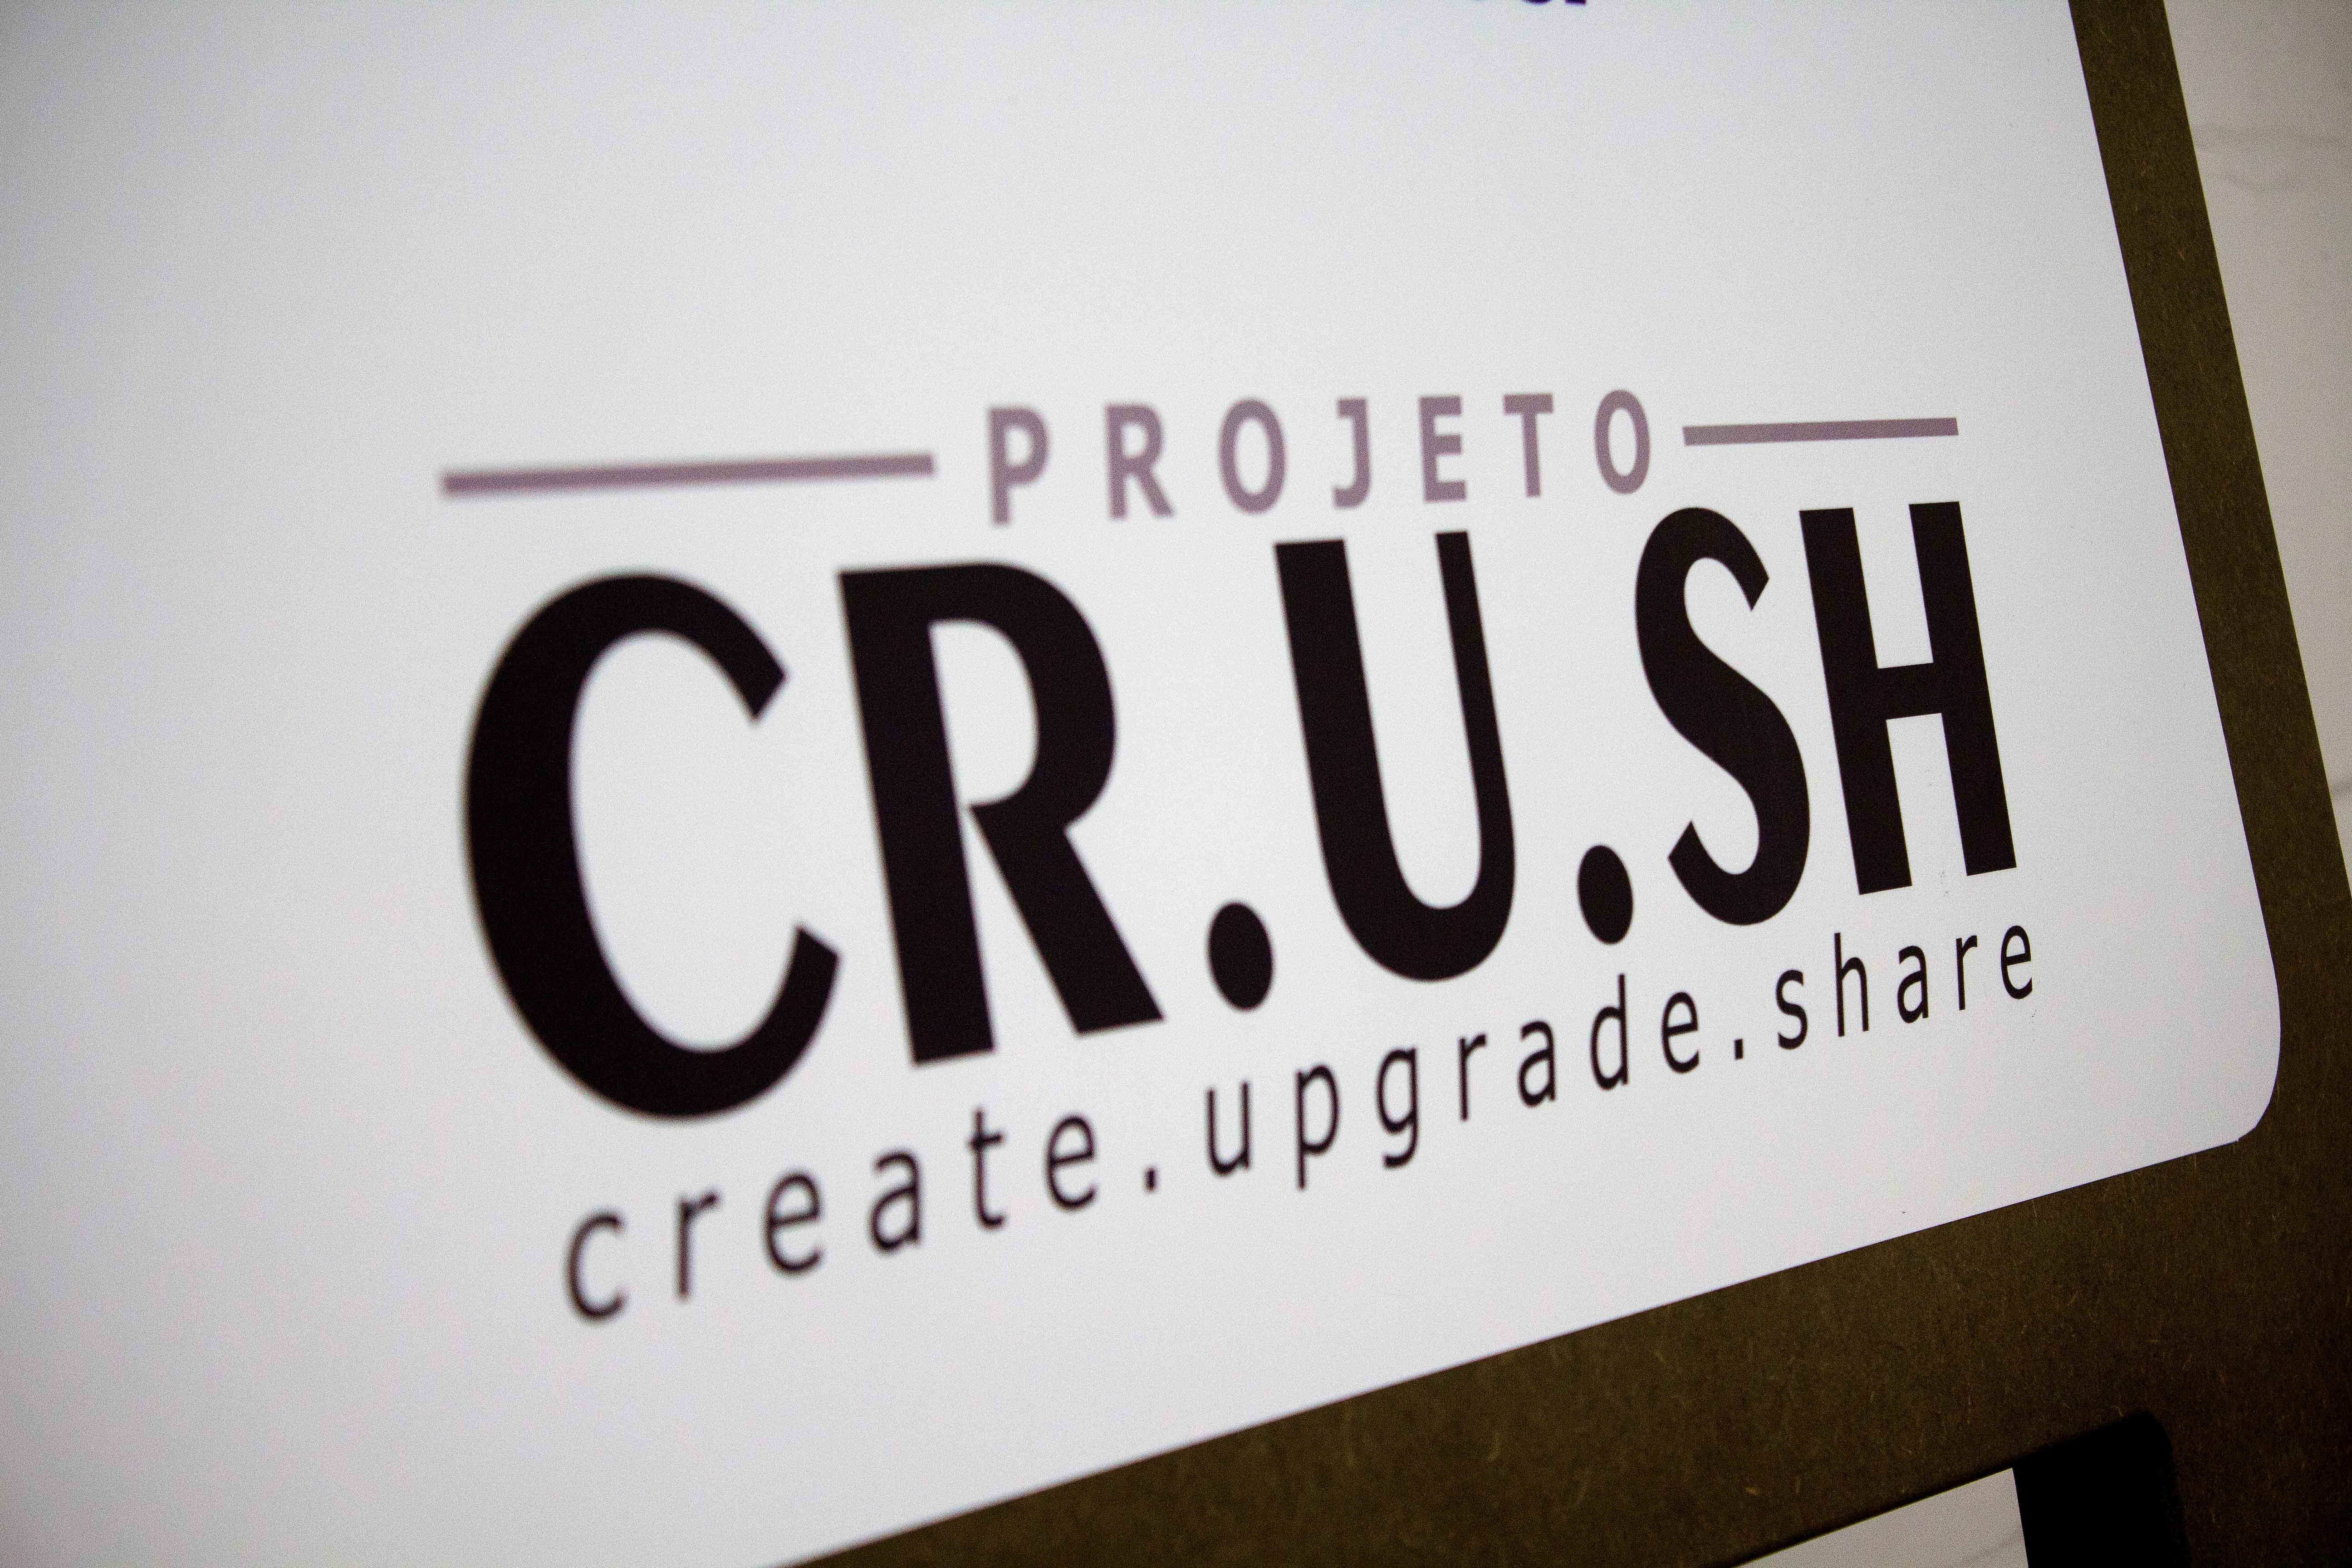 projeto-crush-create-upgrade-share